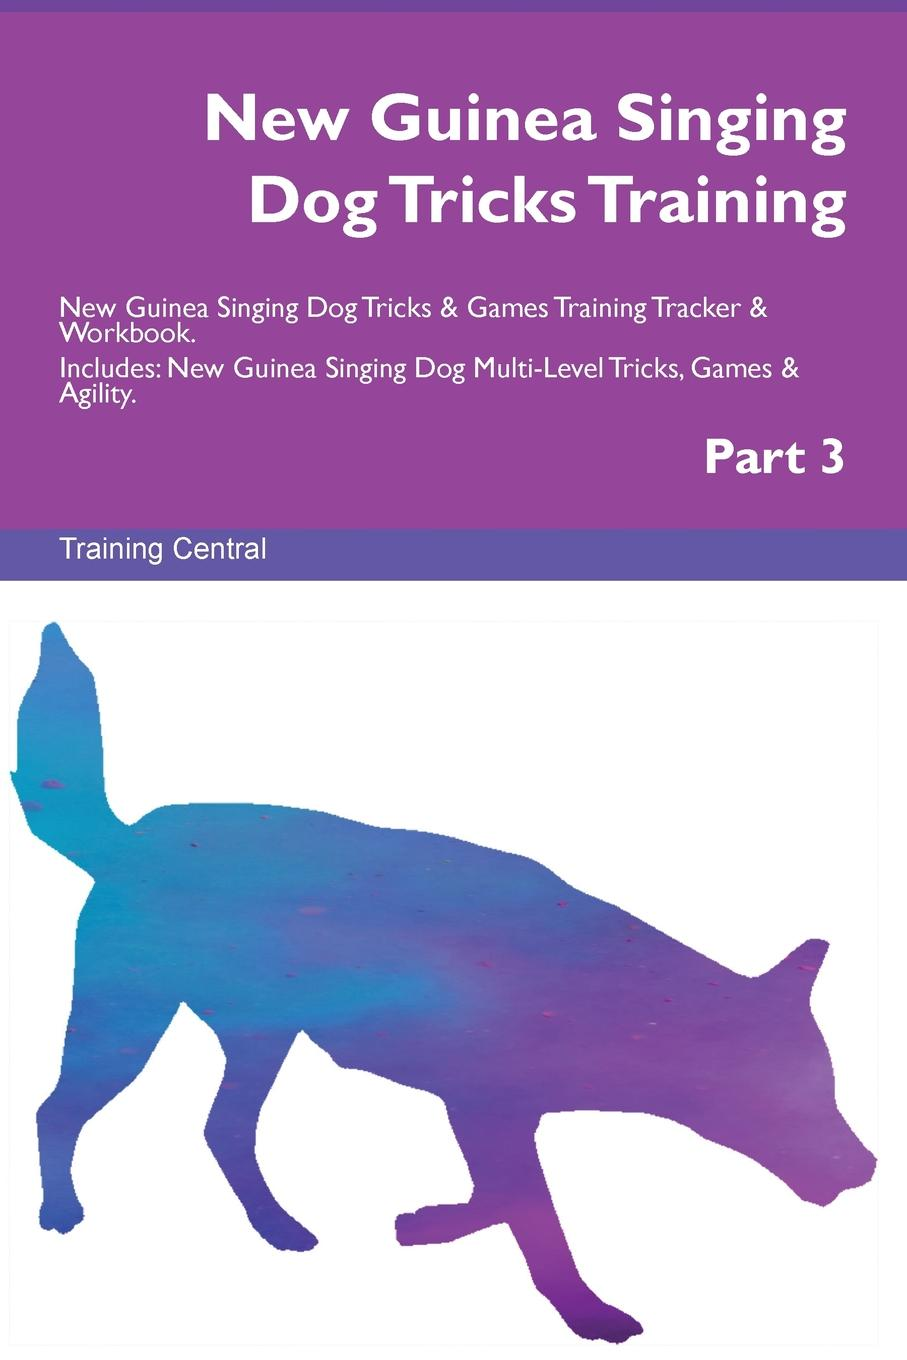 Training Central New Guinea Singing Dog Tricks Training New Guinea Singing Dog Tricks . Games Training Tracker . Workbook. Includes. New Guinea Singing Dog Multi-Level Tricks, Games . Agility. Part 3 this book loves you